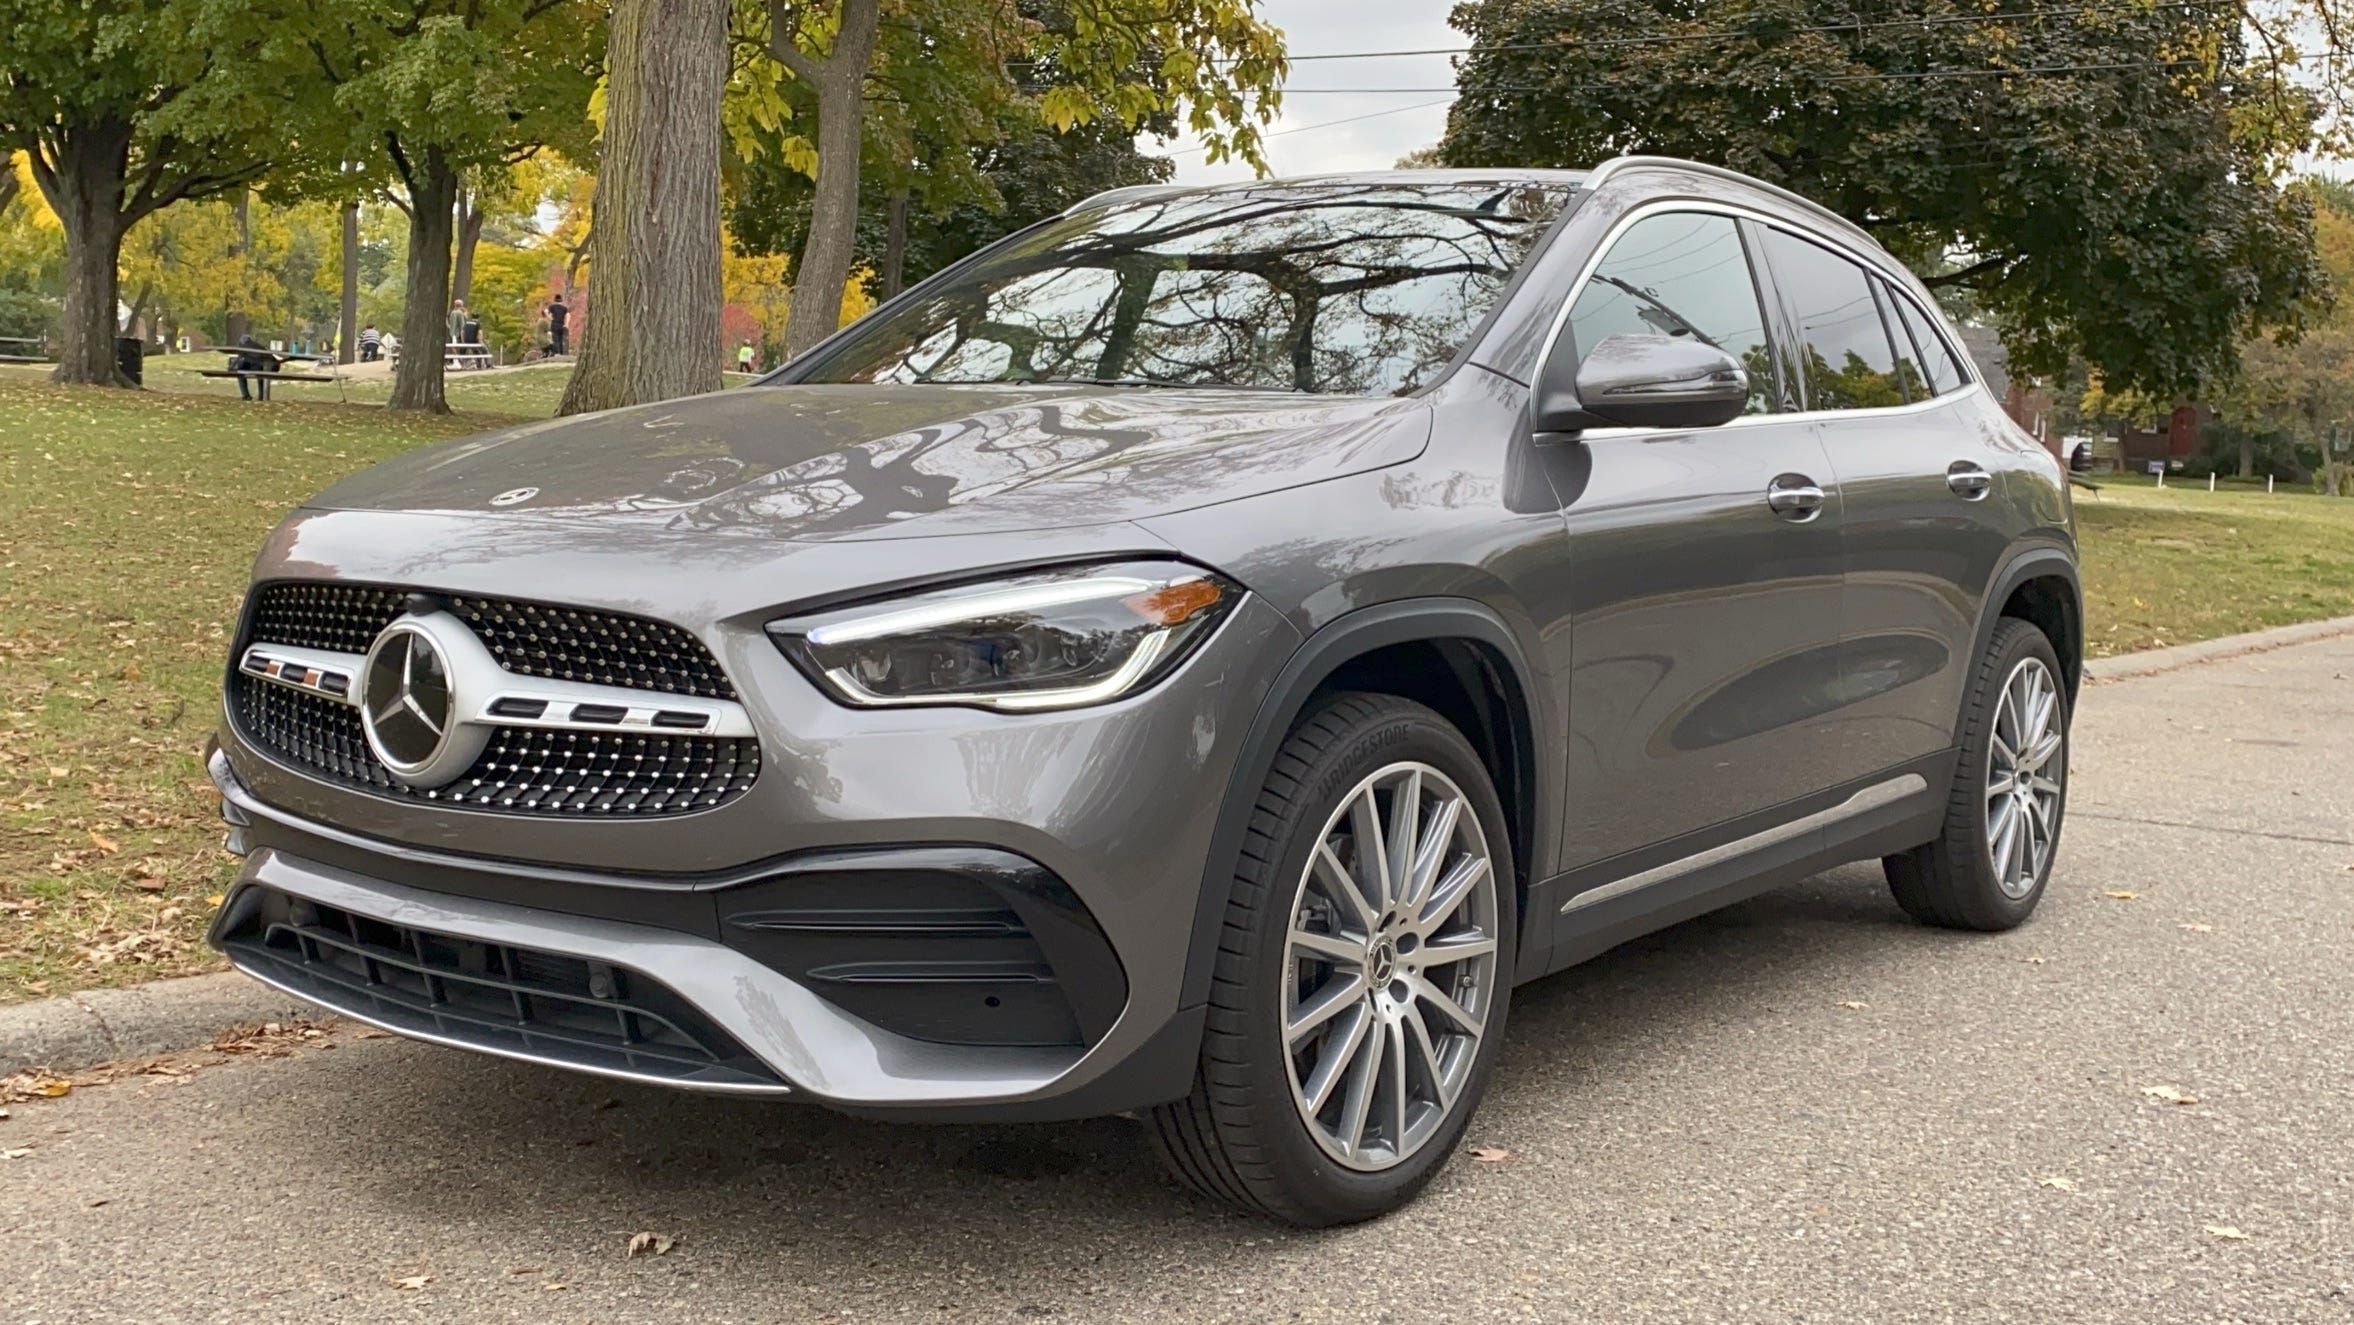 2021 Mercedes Gla250 Is A Good Small Suv But Is That Good Enough Small Suv Best Small Suv Small Suv Cars